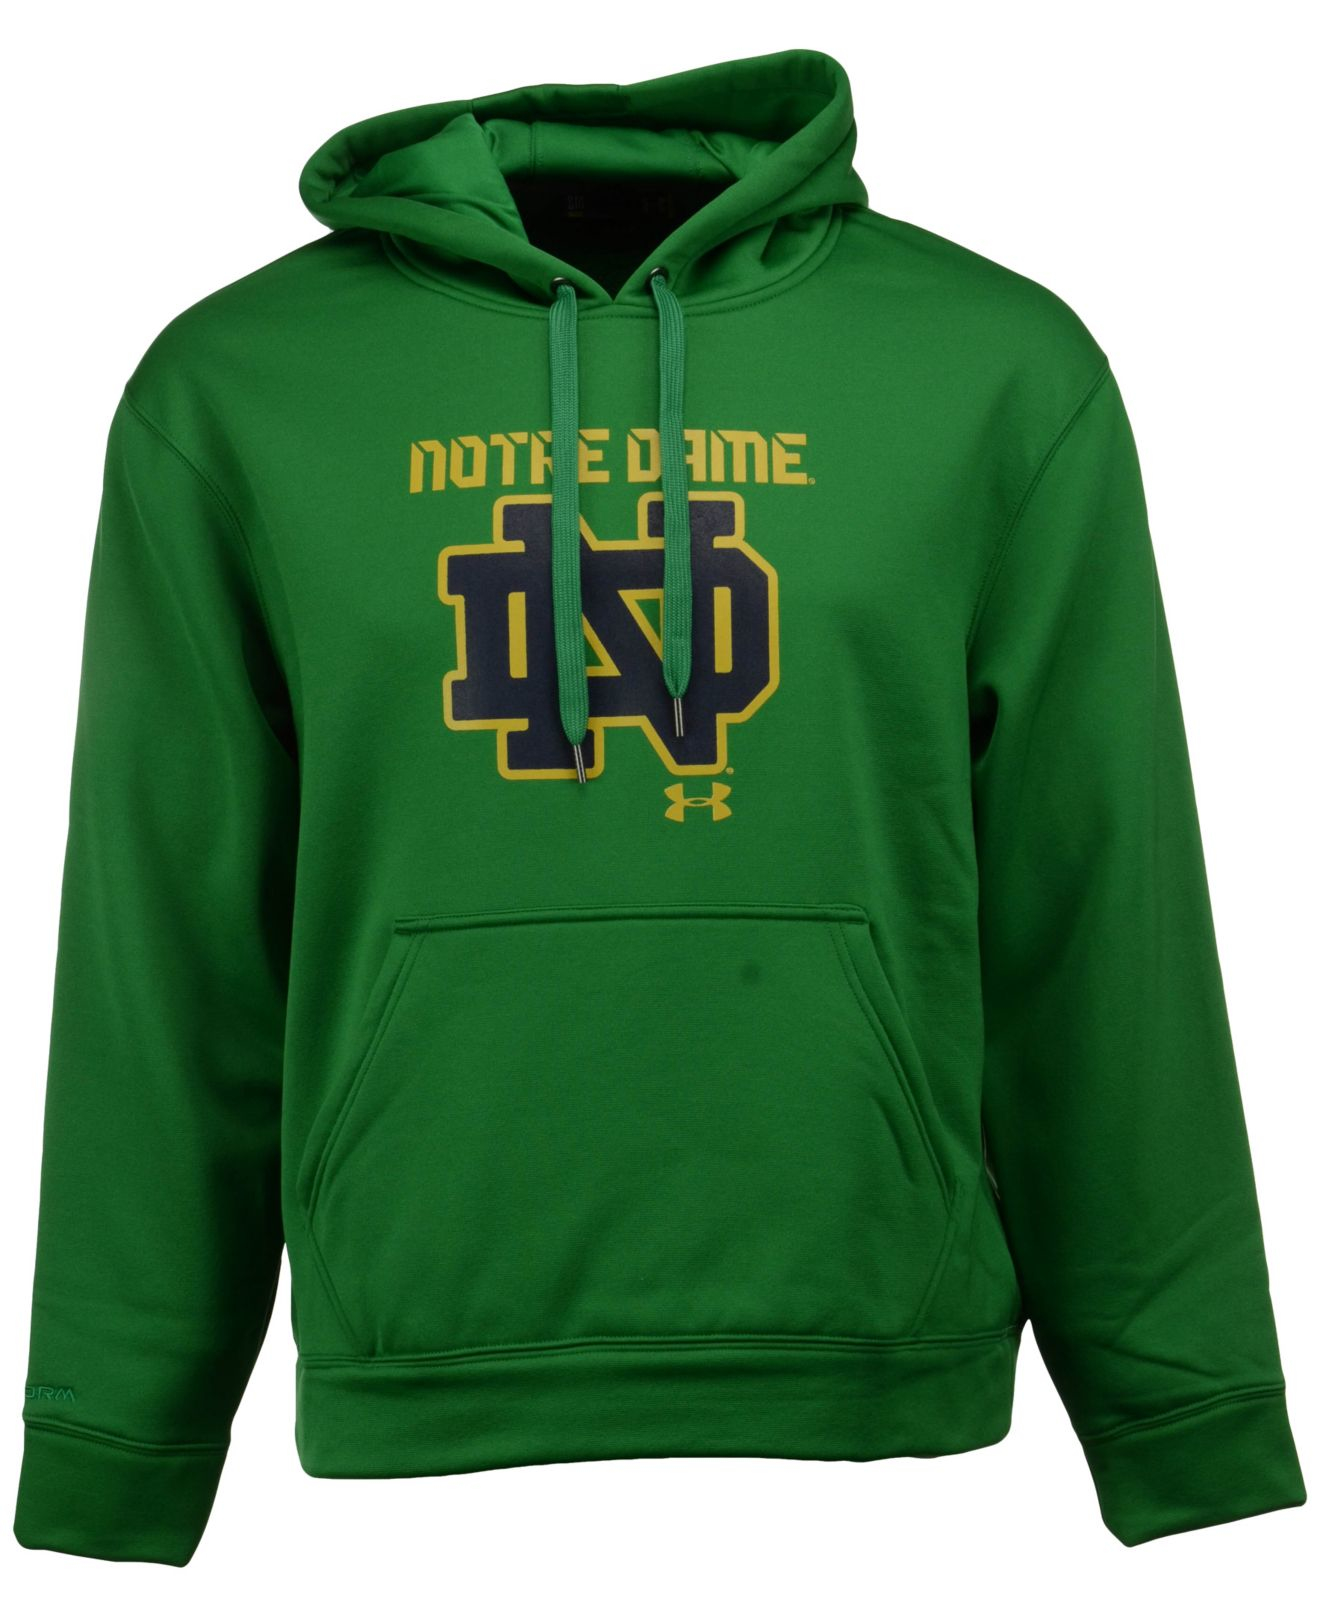 Lyst - Under Armour Men s Notre Dame Fighting Irish Fleece Hoodie in ... 322e03a5f